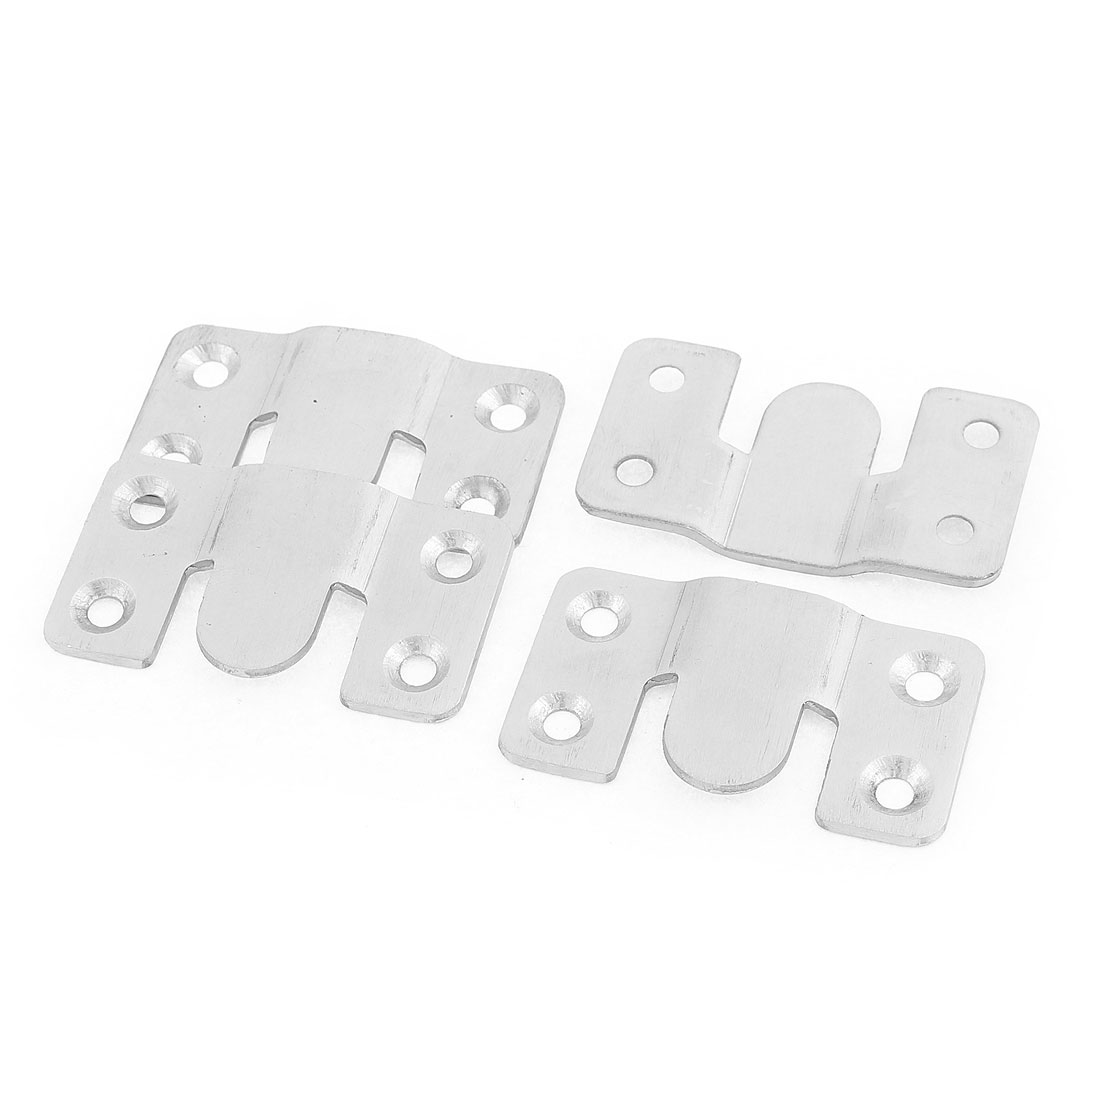 Furniture Sofa Photo Frame Interlock Bracket Joint Connector Hanging Hook 4 Pcs